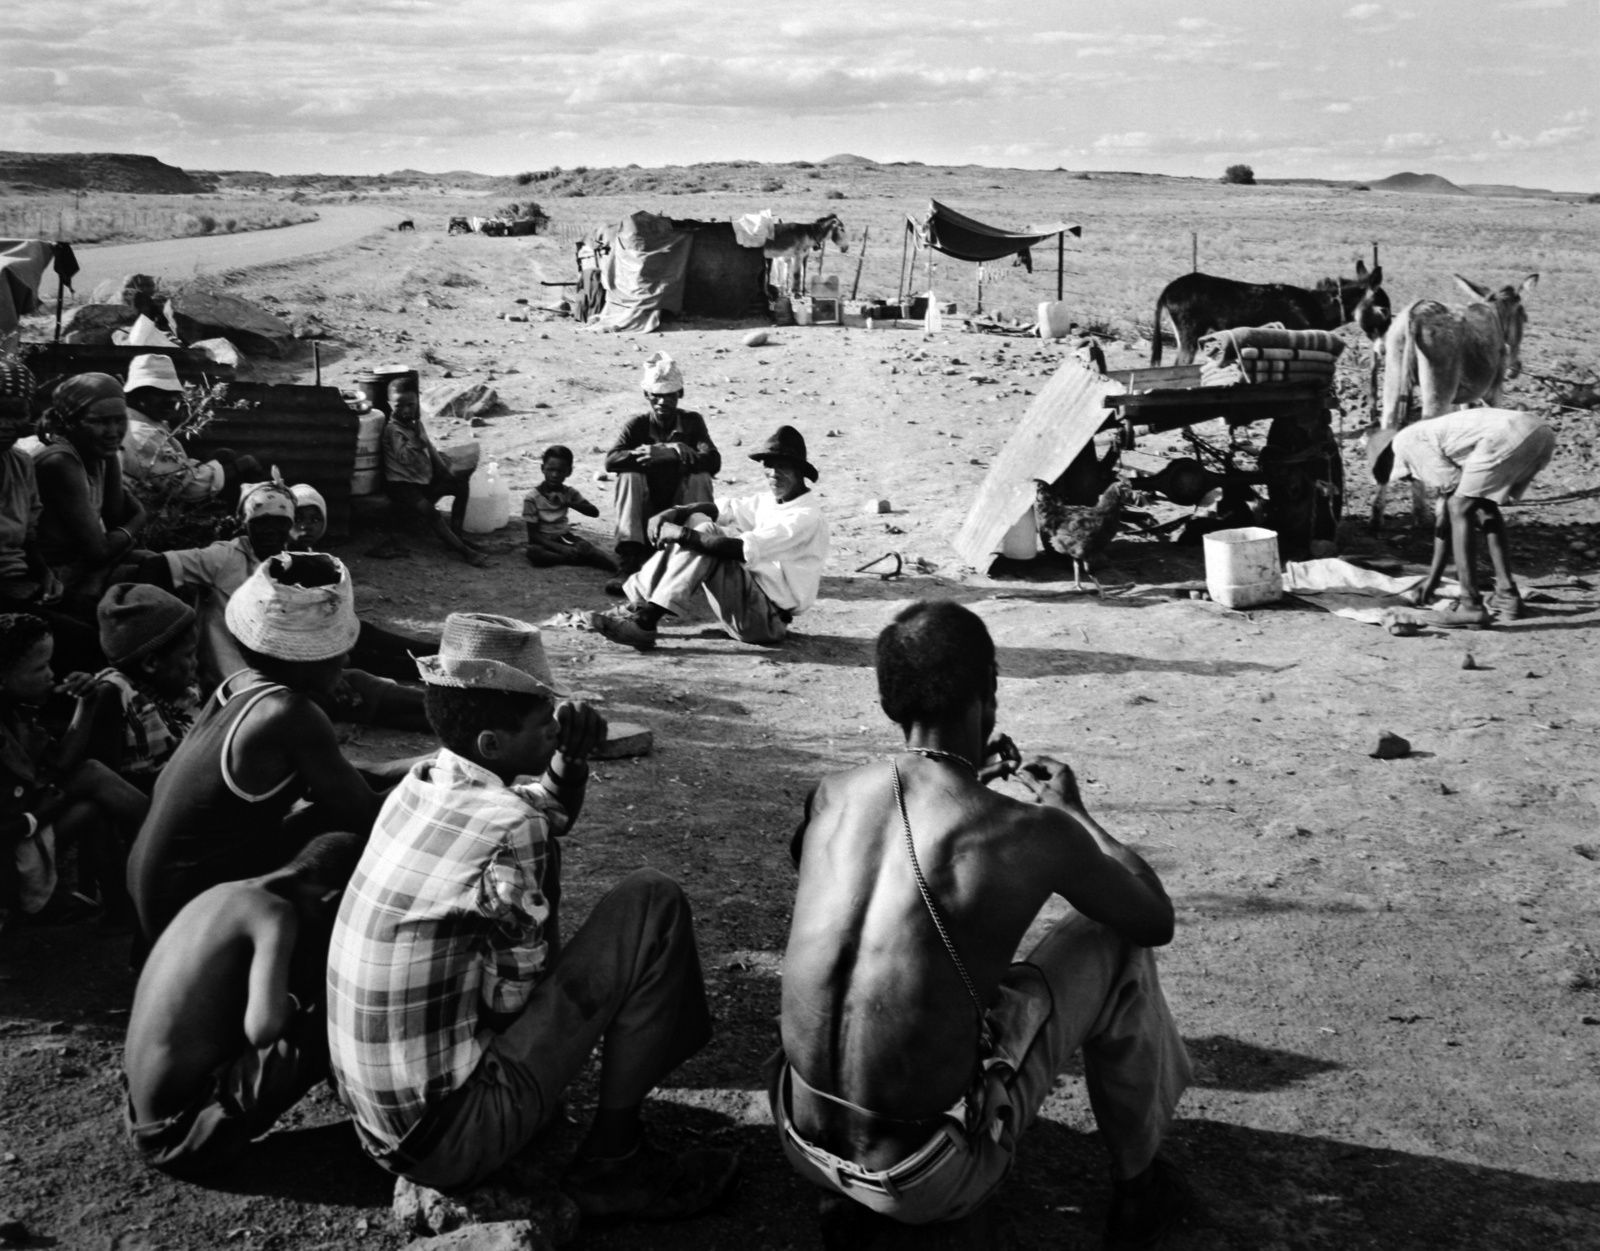 """Encampment of Swerwers, nomadic farmworkers, on the road to Philipstown, Northern Cape"", 30/12/1986 David Goldblatt. Courtesy of the artist and Marian Goodman Gallery, Paris"